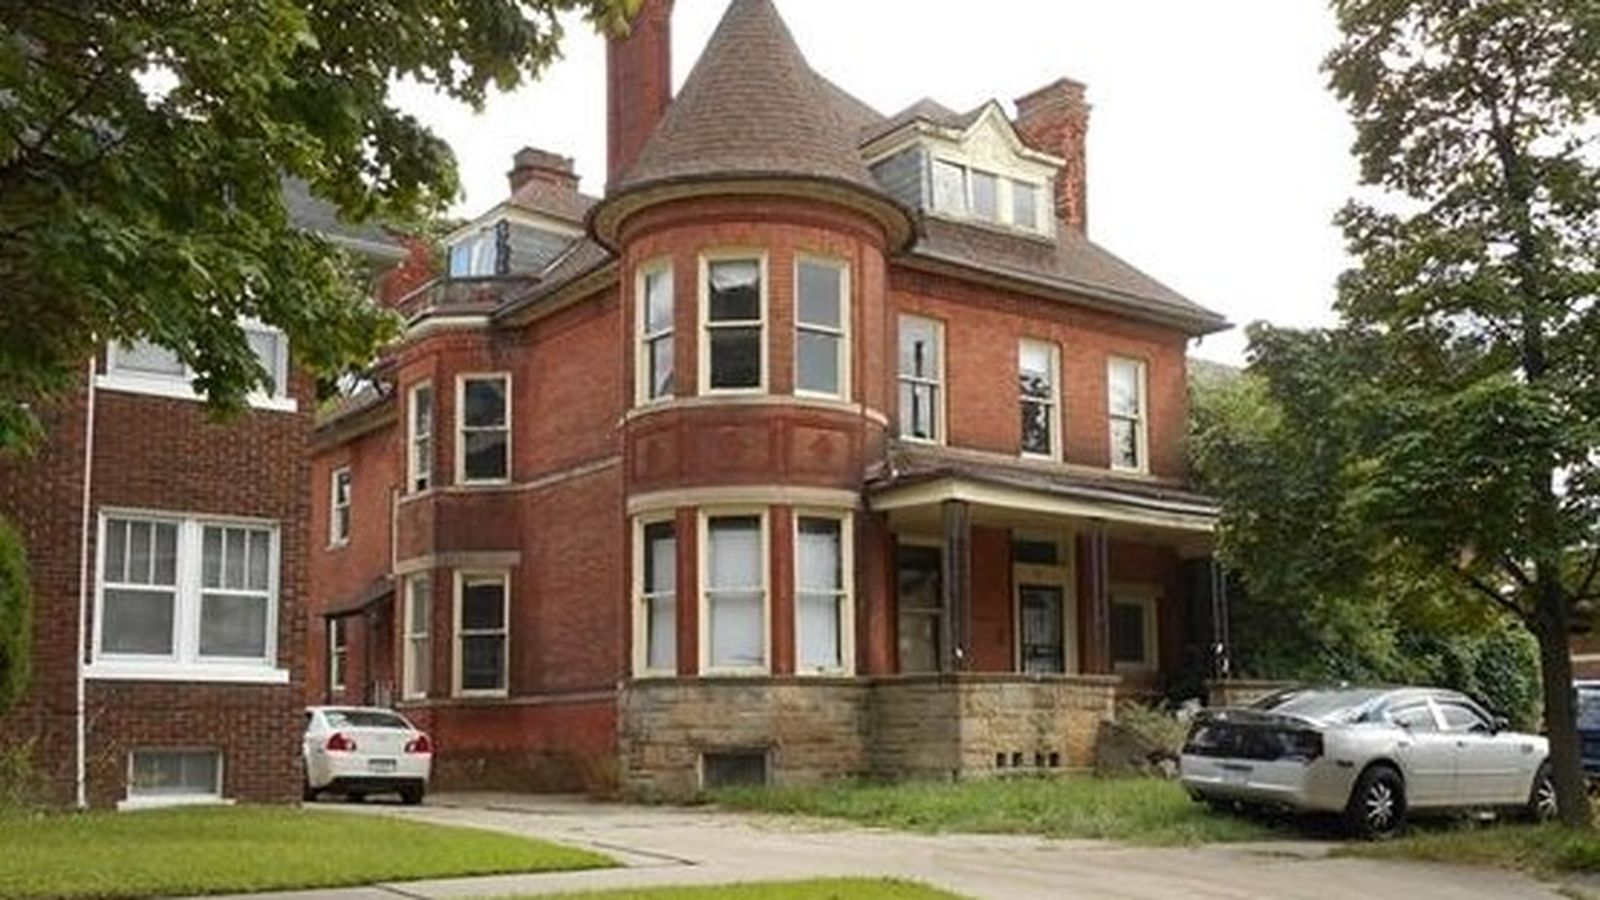 Price Drop 116 Year Old Home Needing Complete Rehab Asks 50k Historic Homes For Sale Old Houses Historic Homes